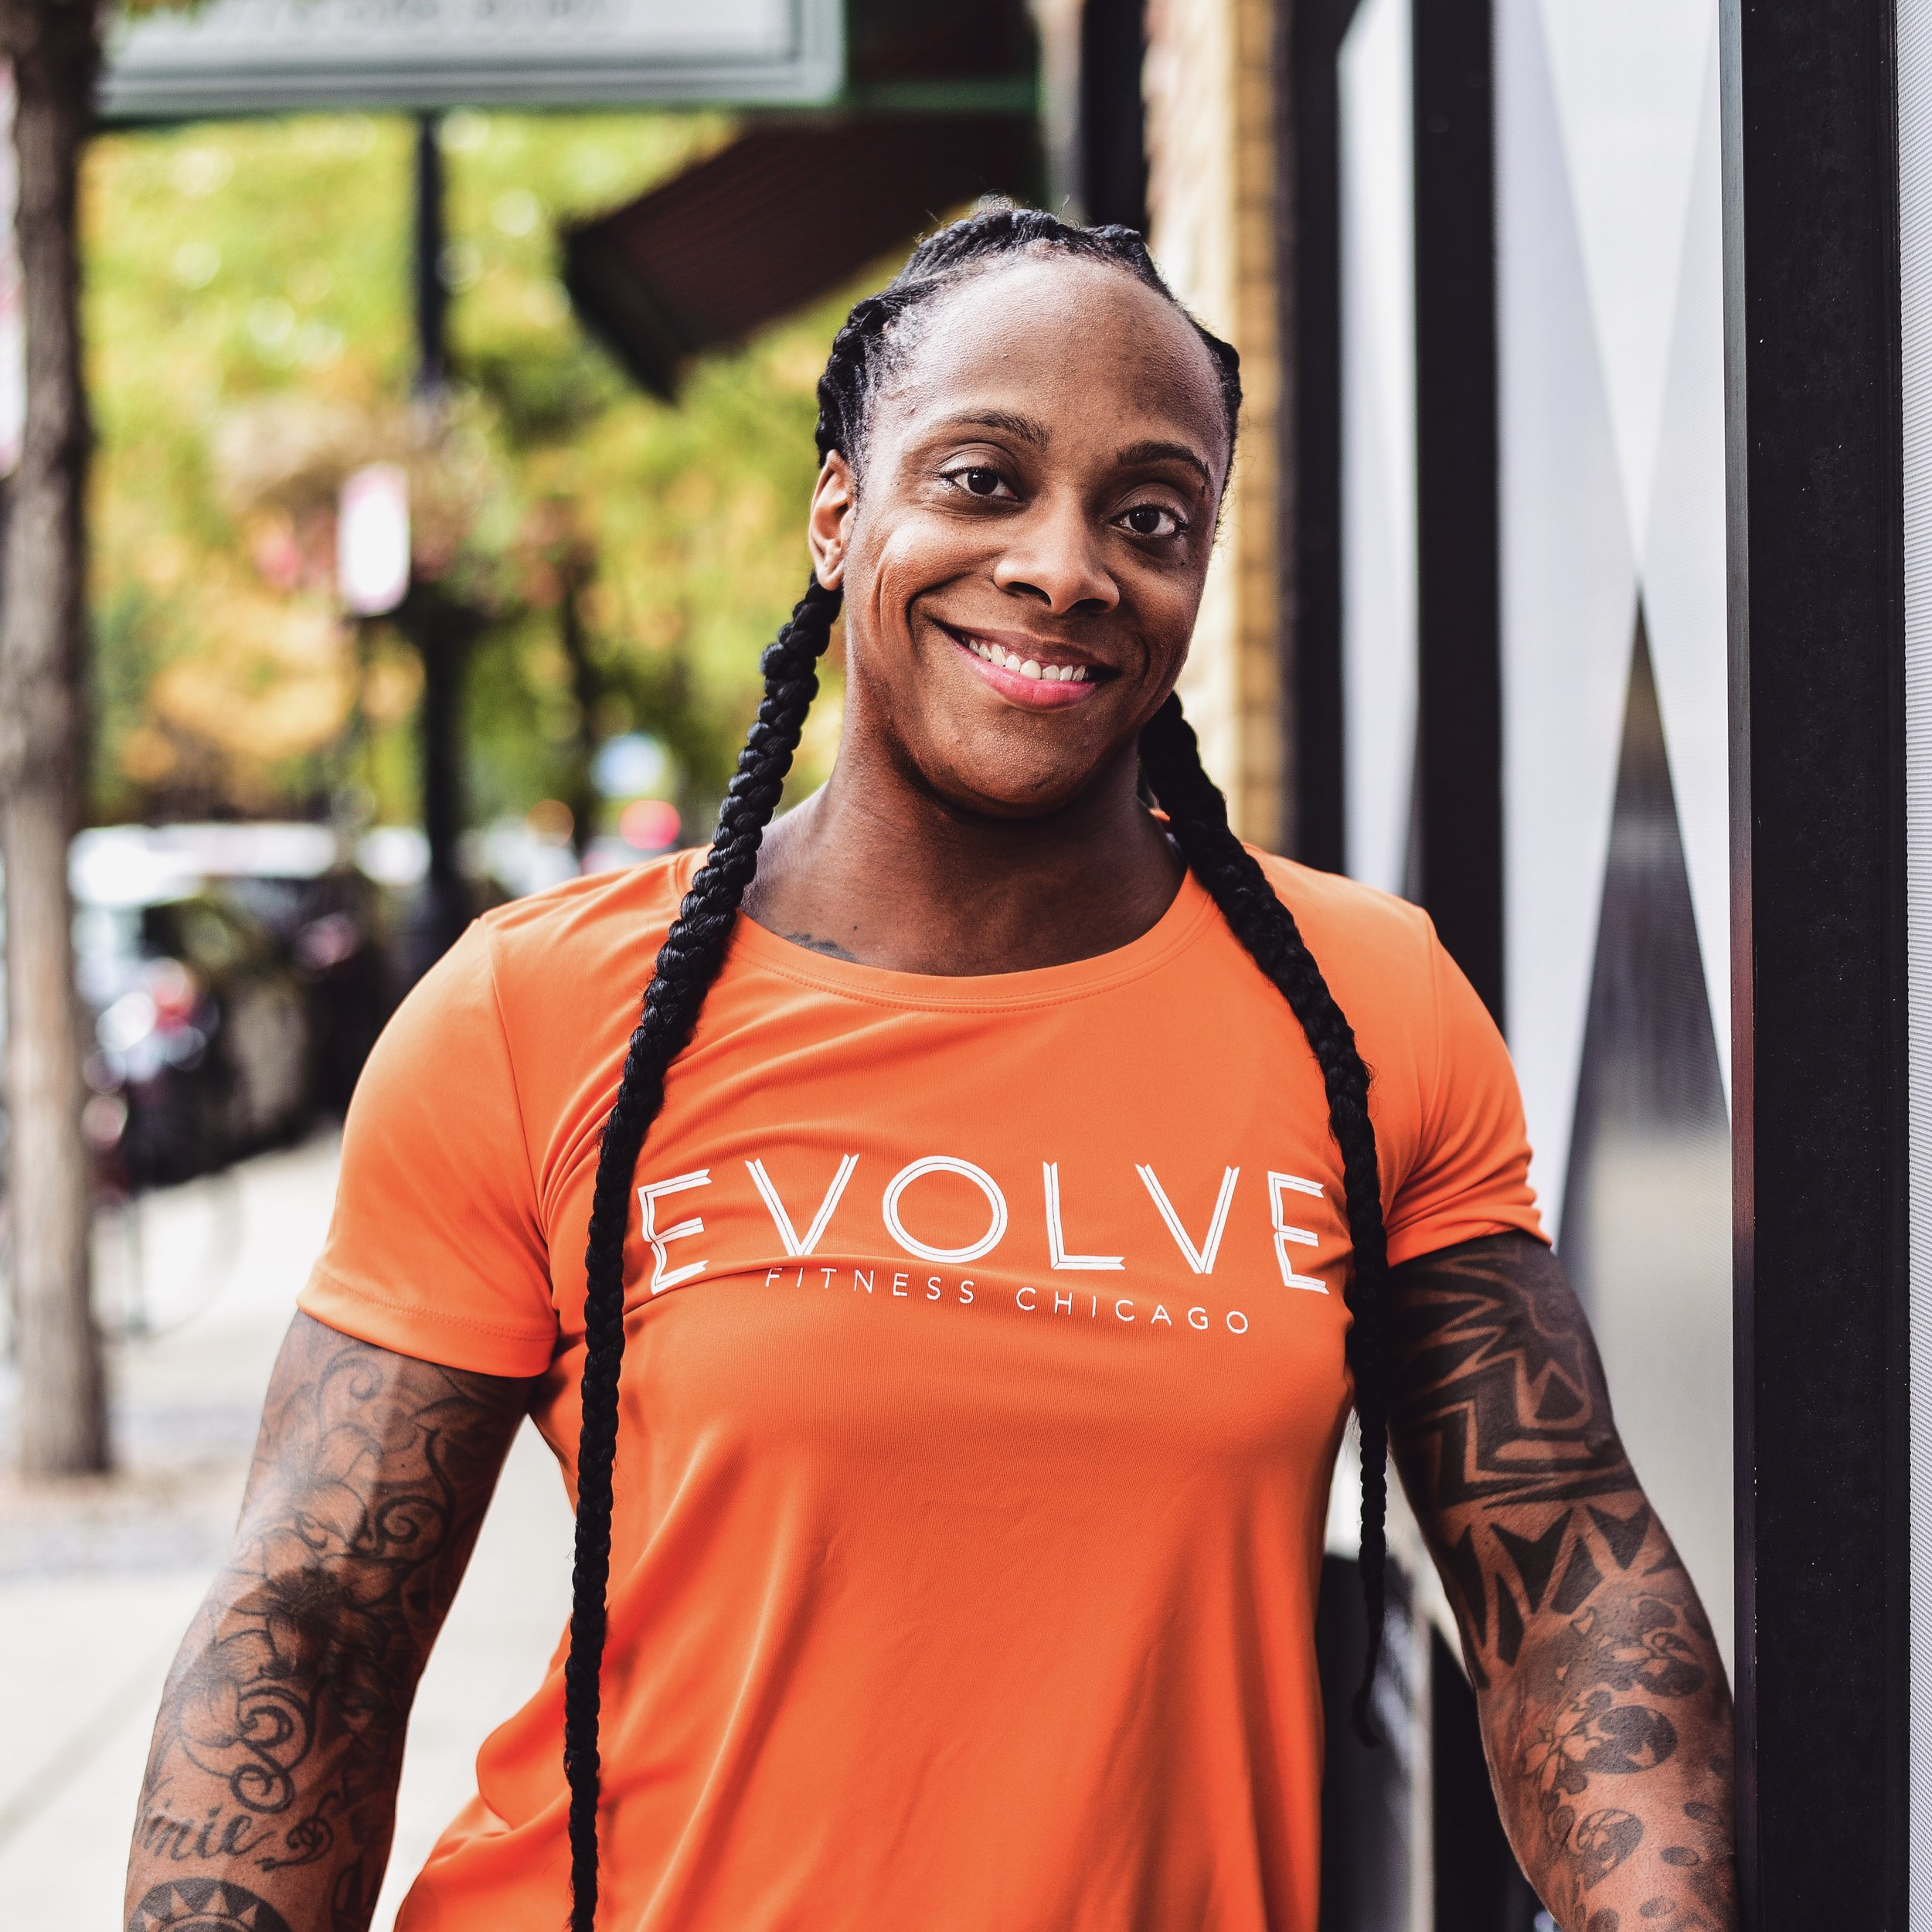 reshanna boswell evolve fitness chicago